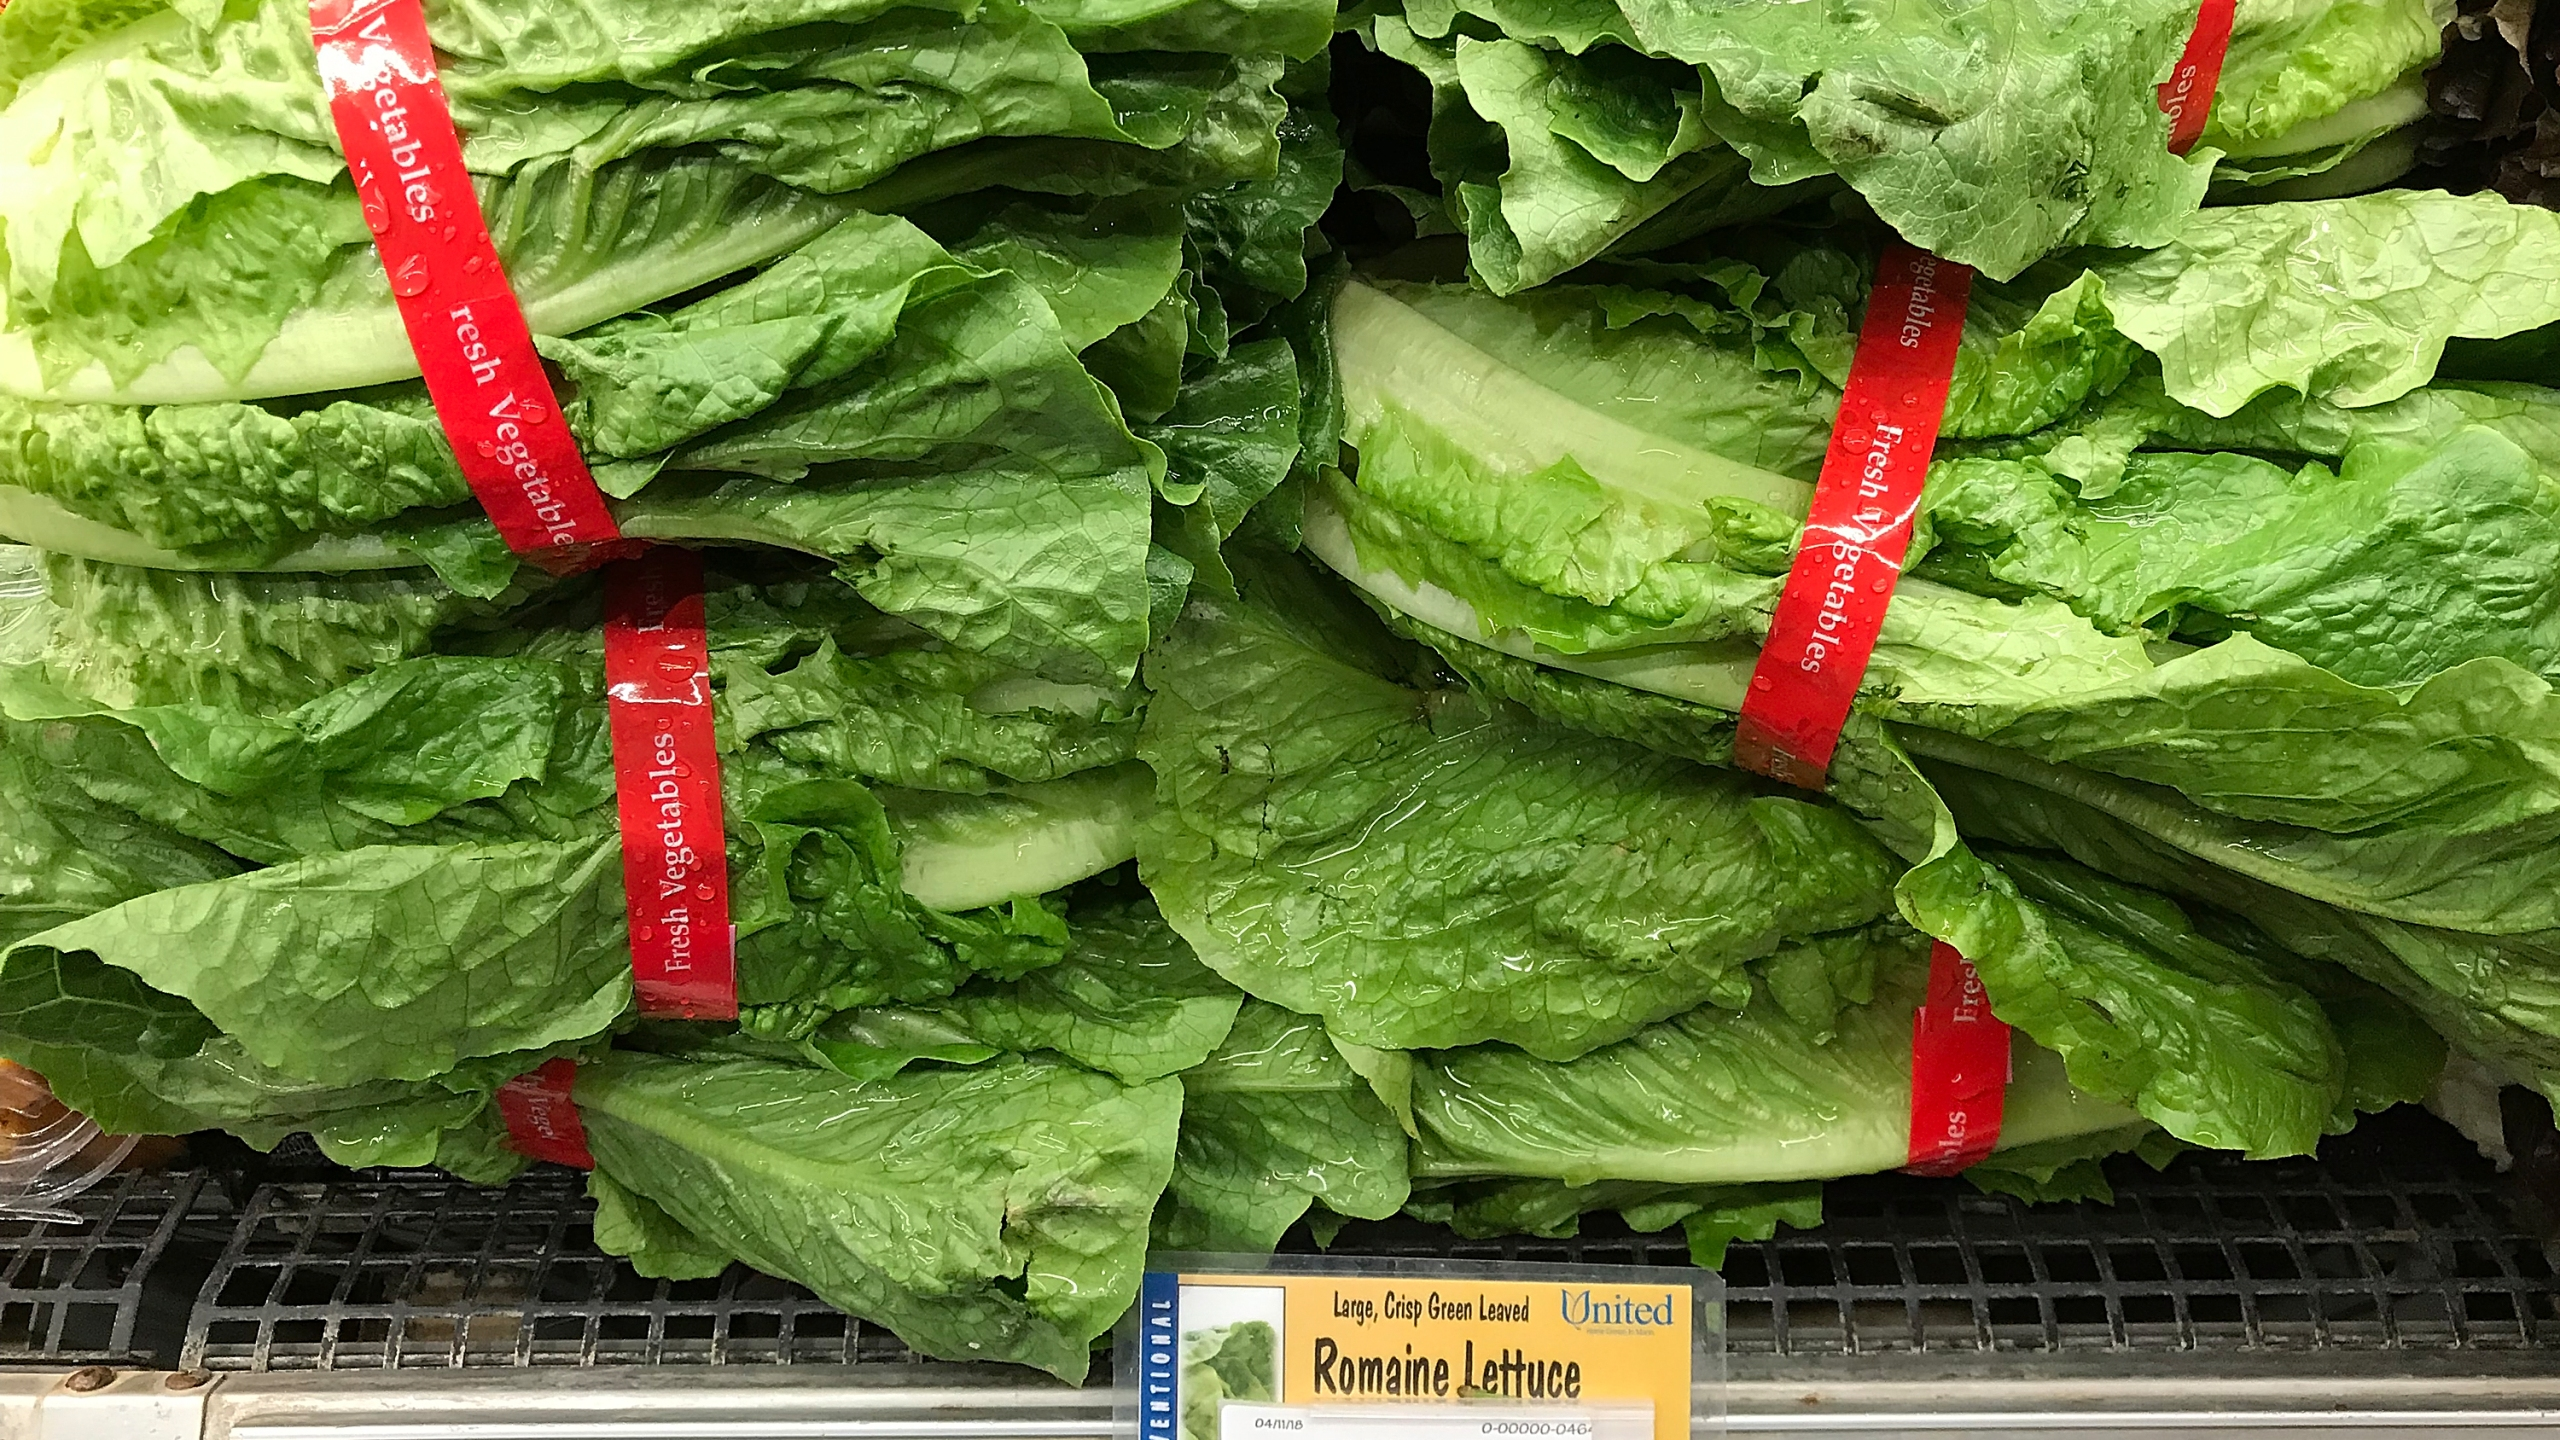 Romaine lettuce is displayed on a shelf at a supermarket in San Rafael on April 23, 2018. (Credit: Justin Sullivan / Getty Images)